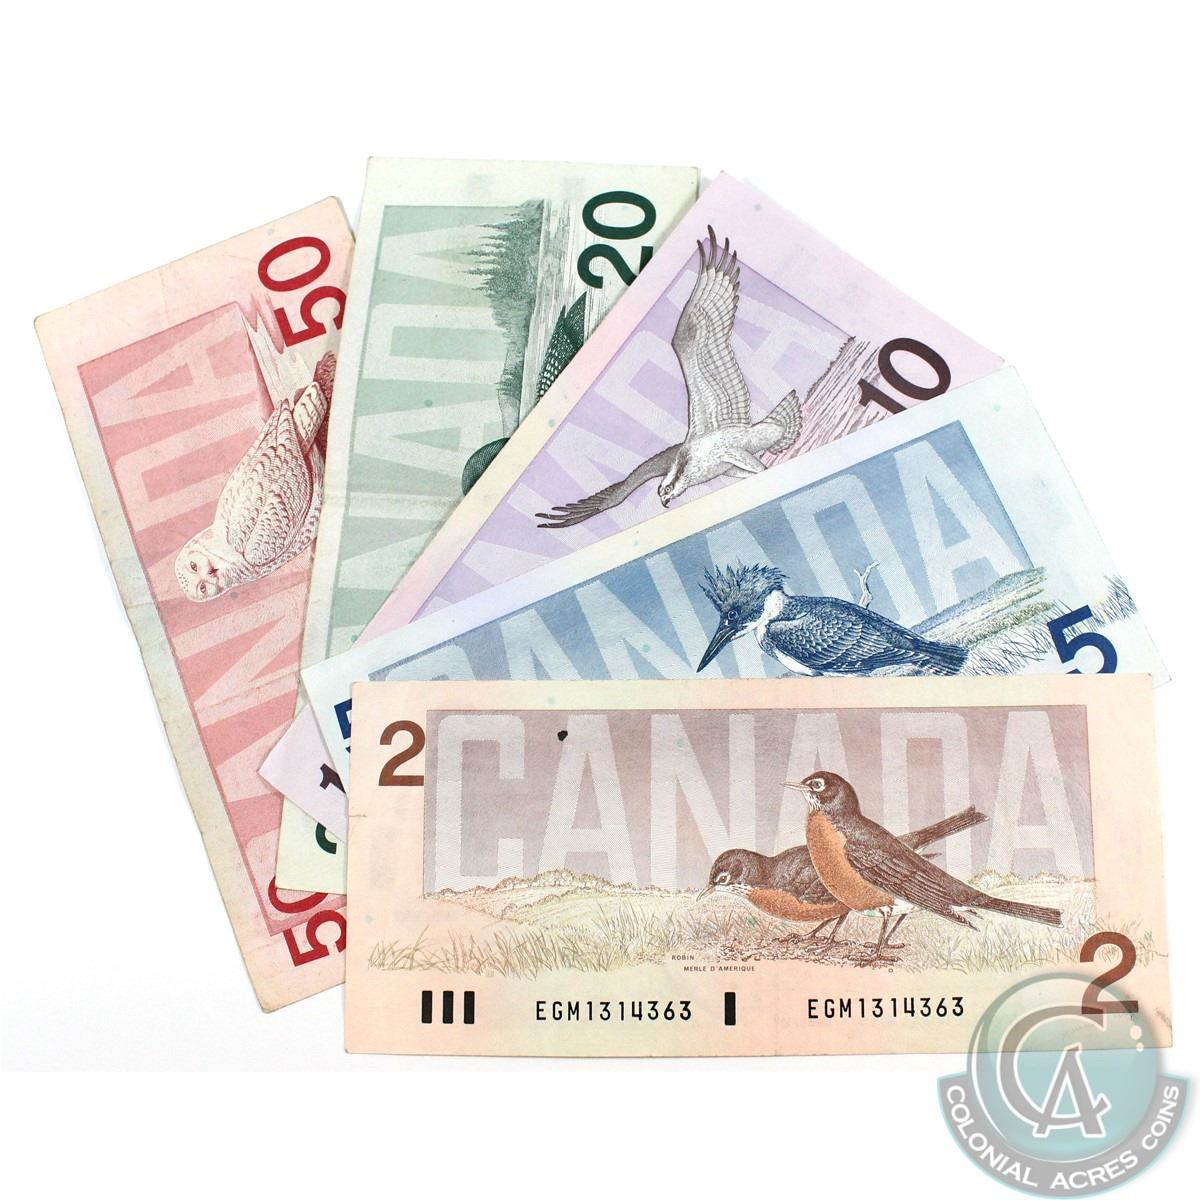 Run Of Five Different Denominations From The Bank Canadas Bird Wiring Money Cibc Series Banknotes In Average Circu